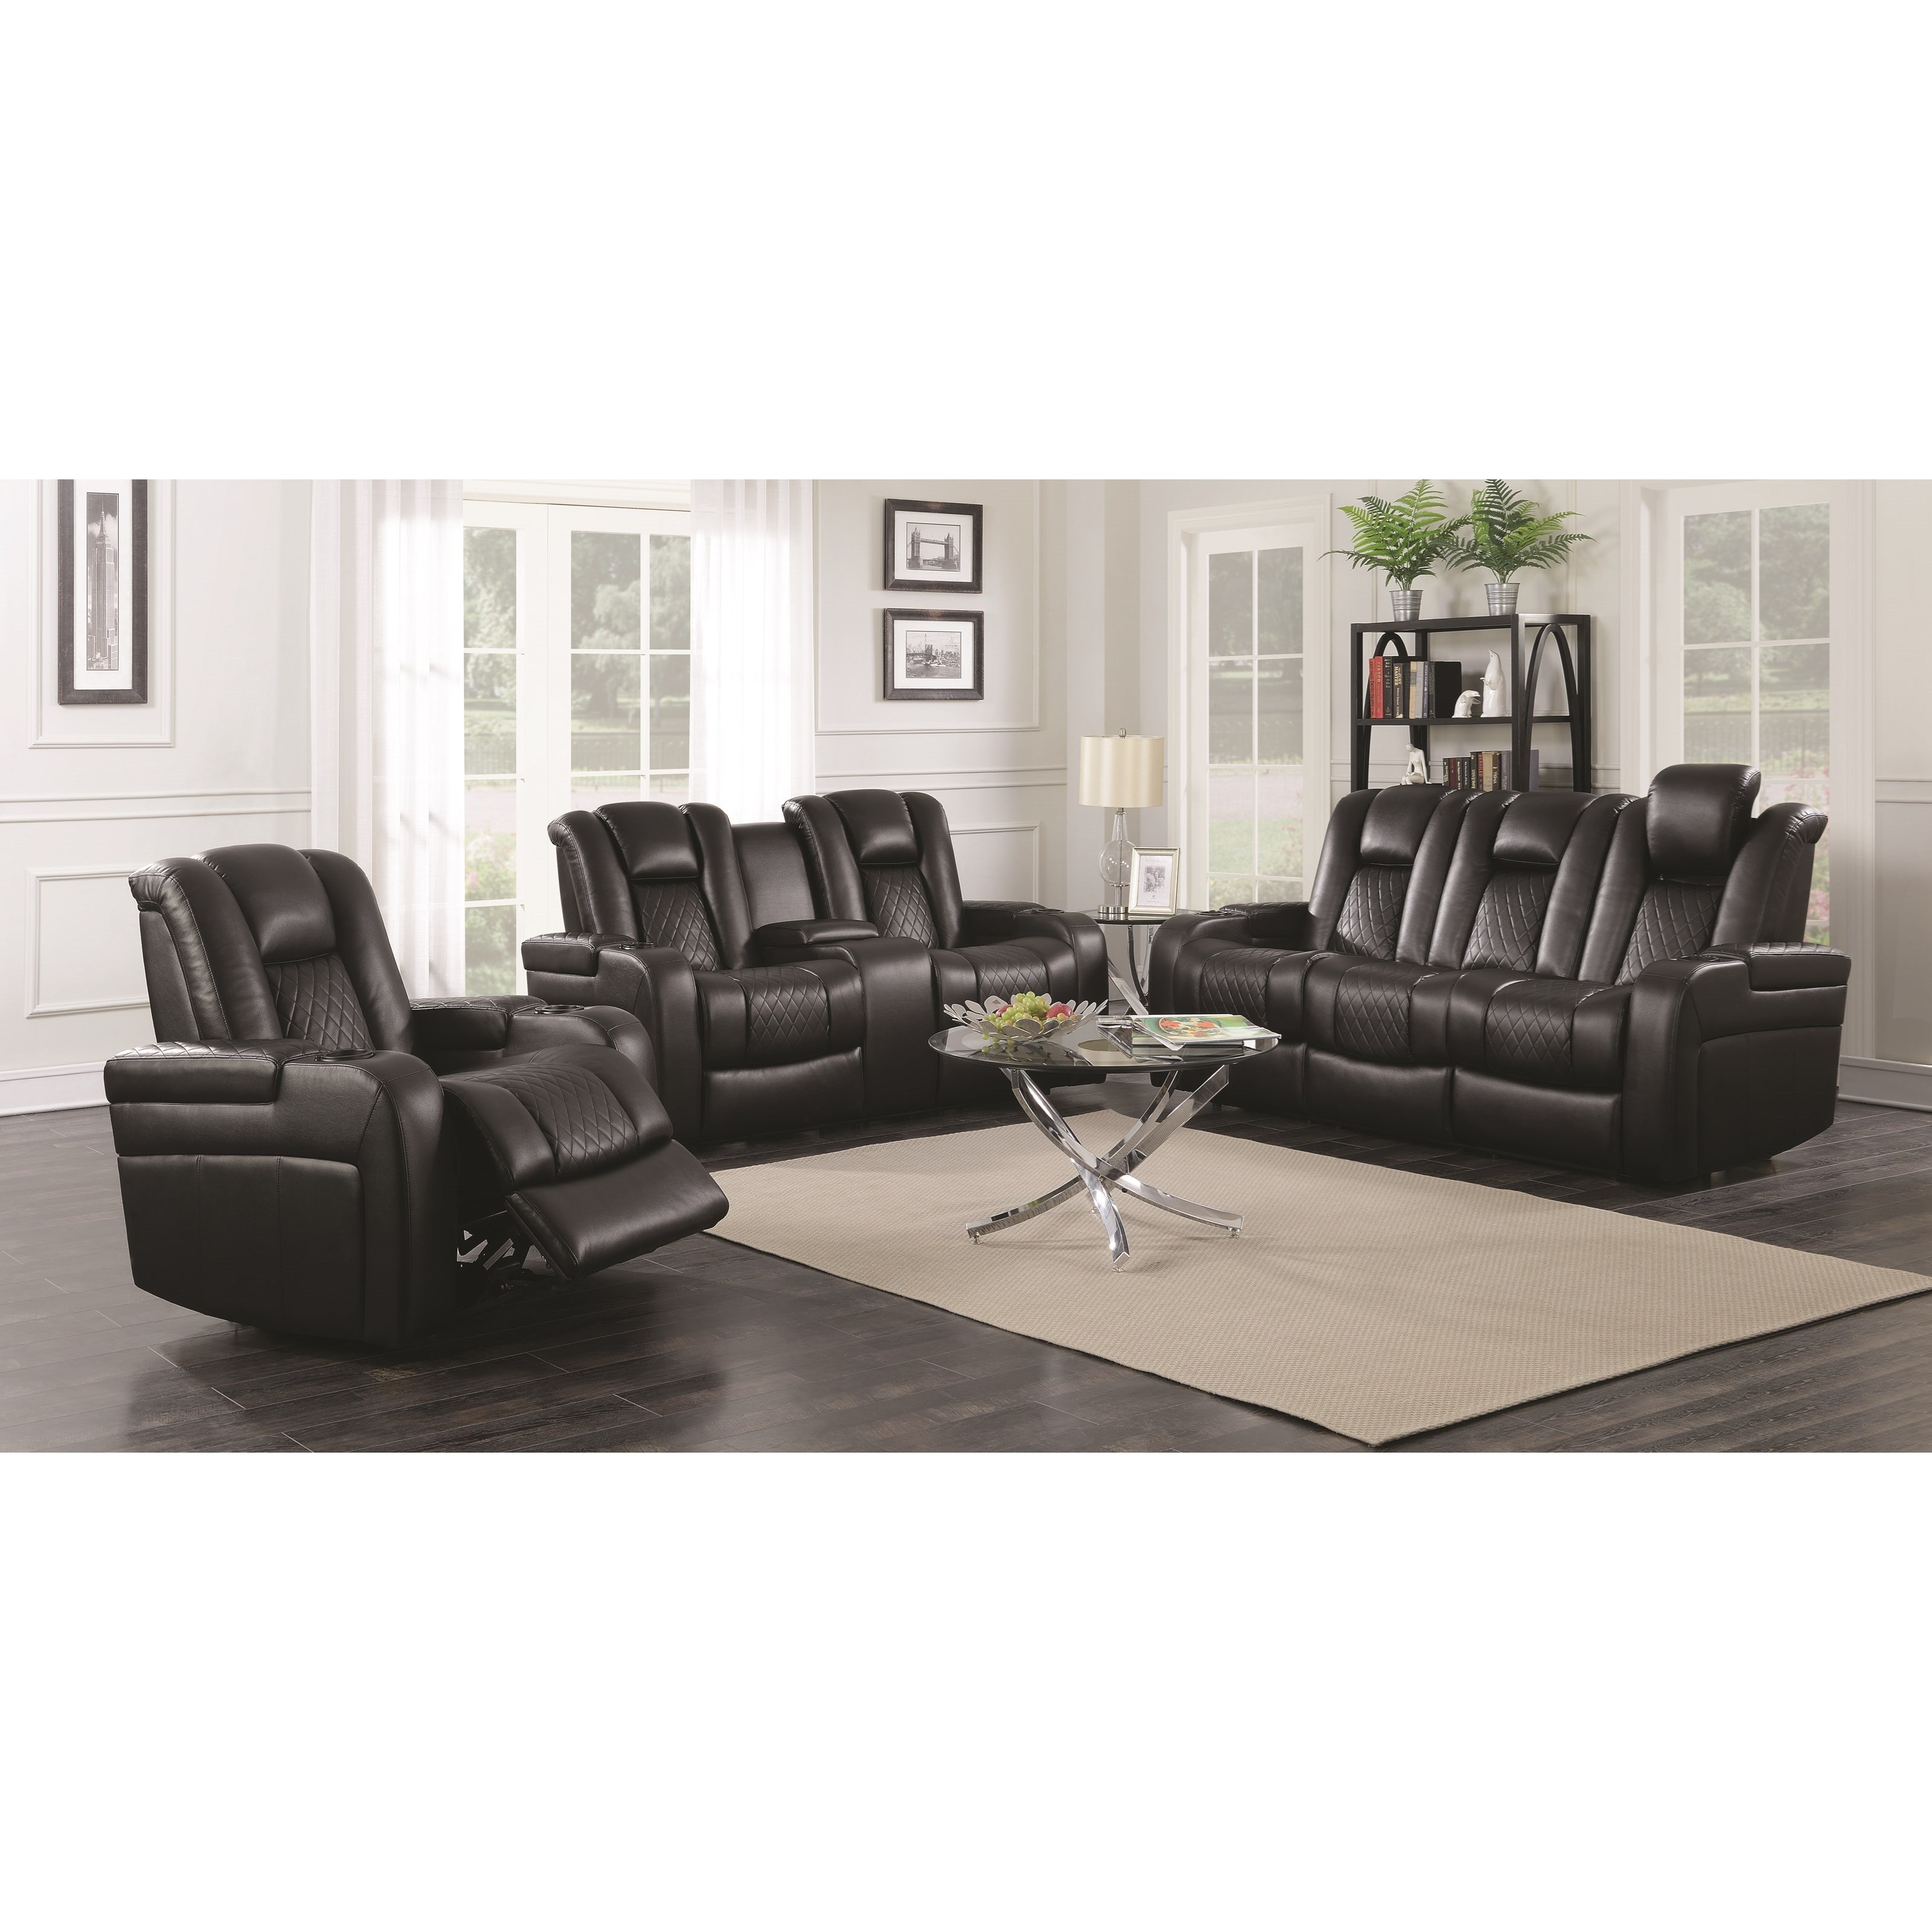 Black Power Reclining Sofa Set Shop for Affordable Home Furniture